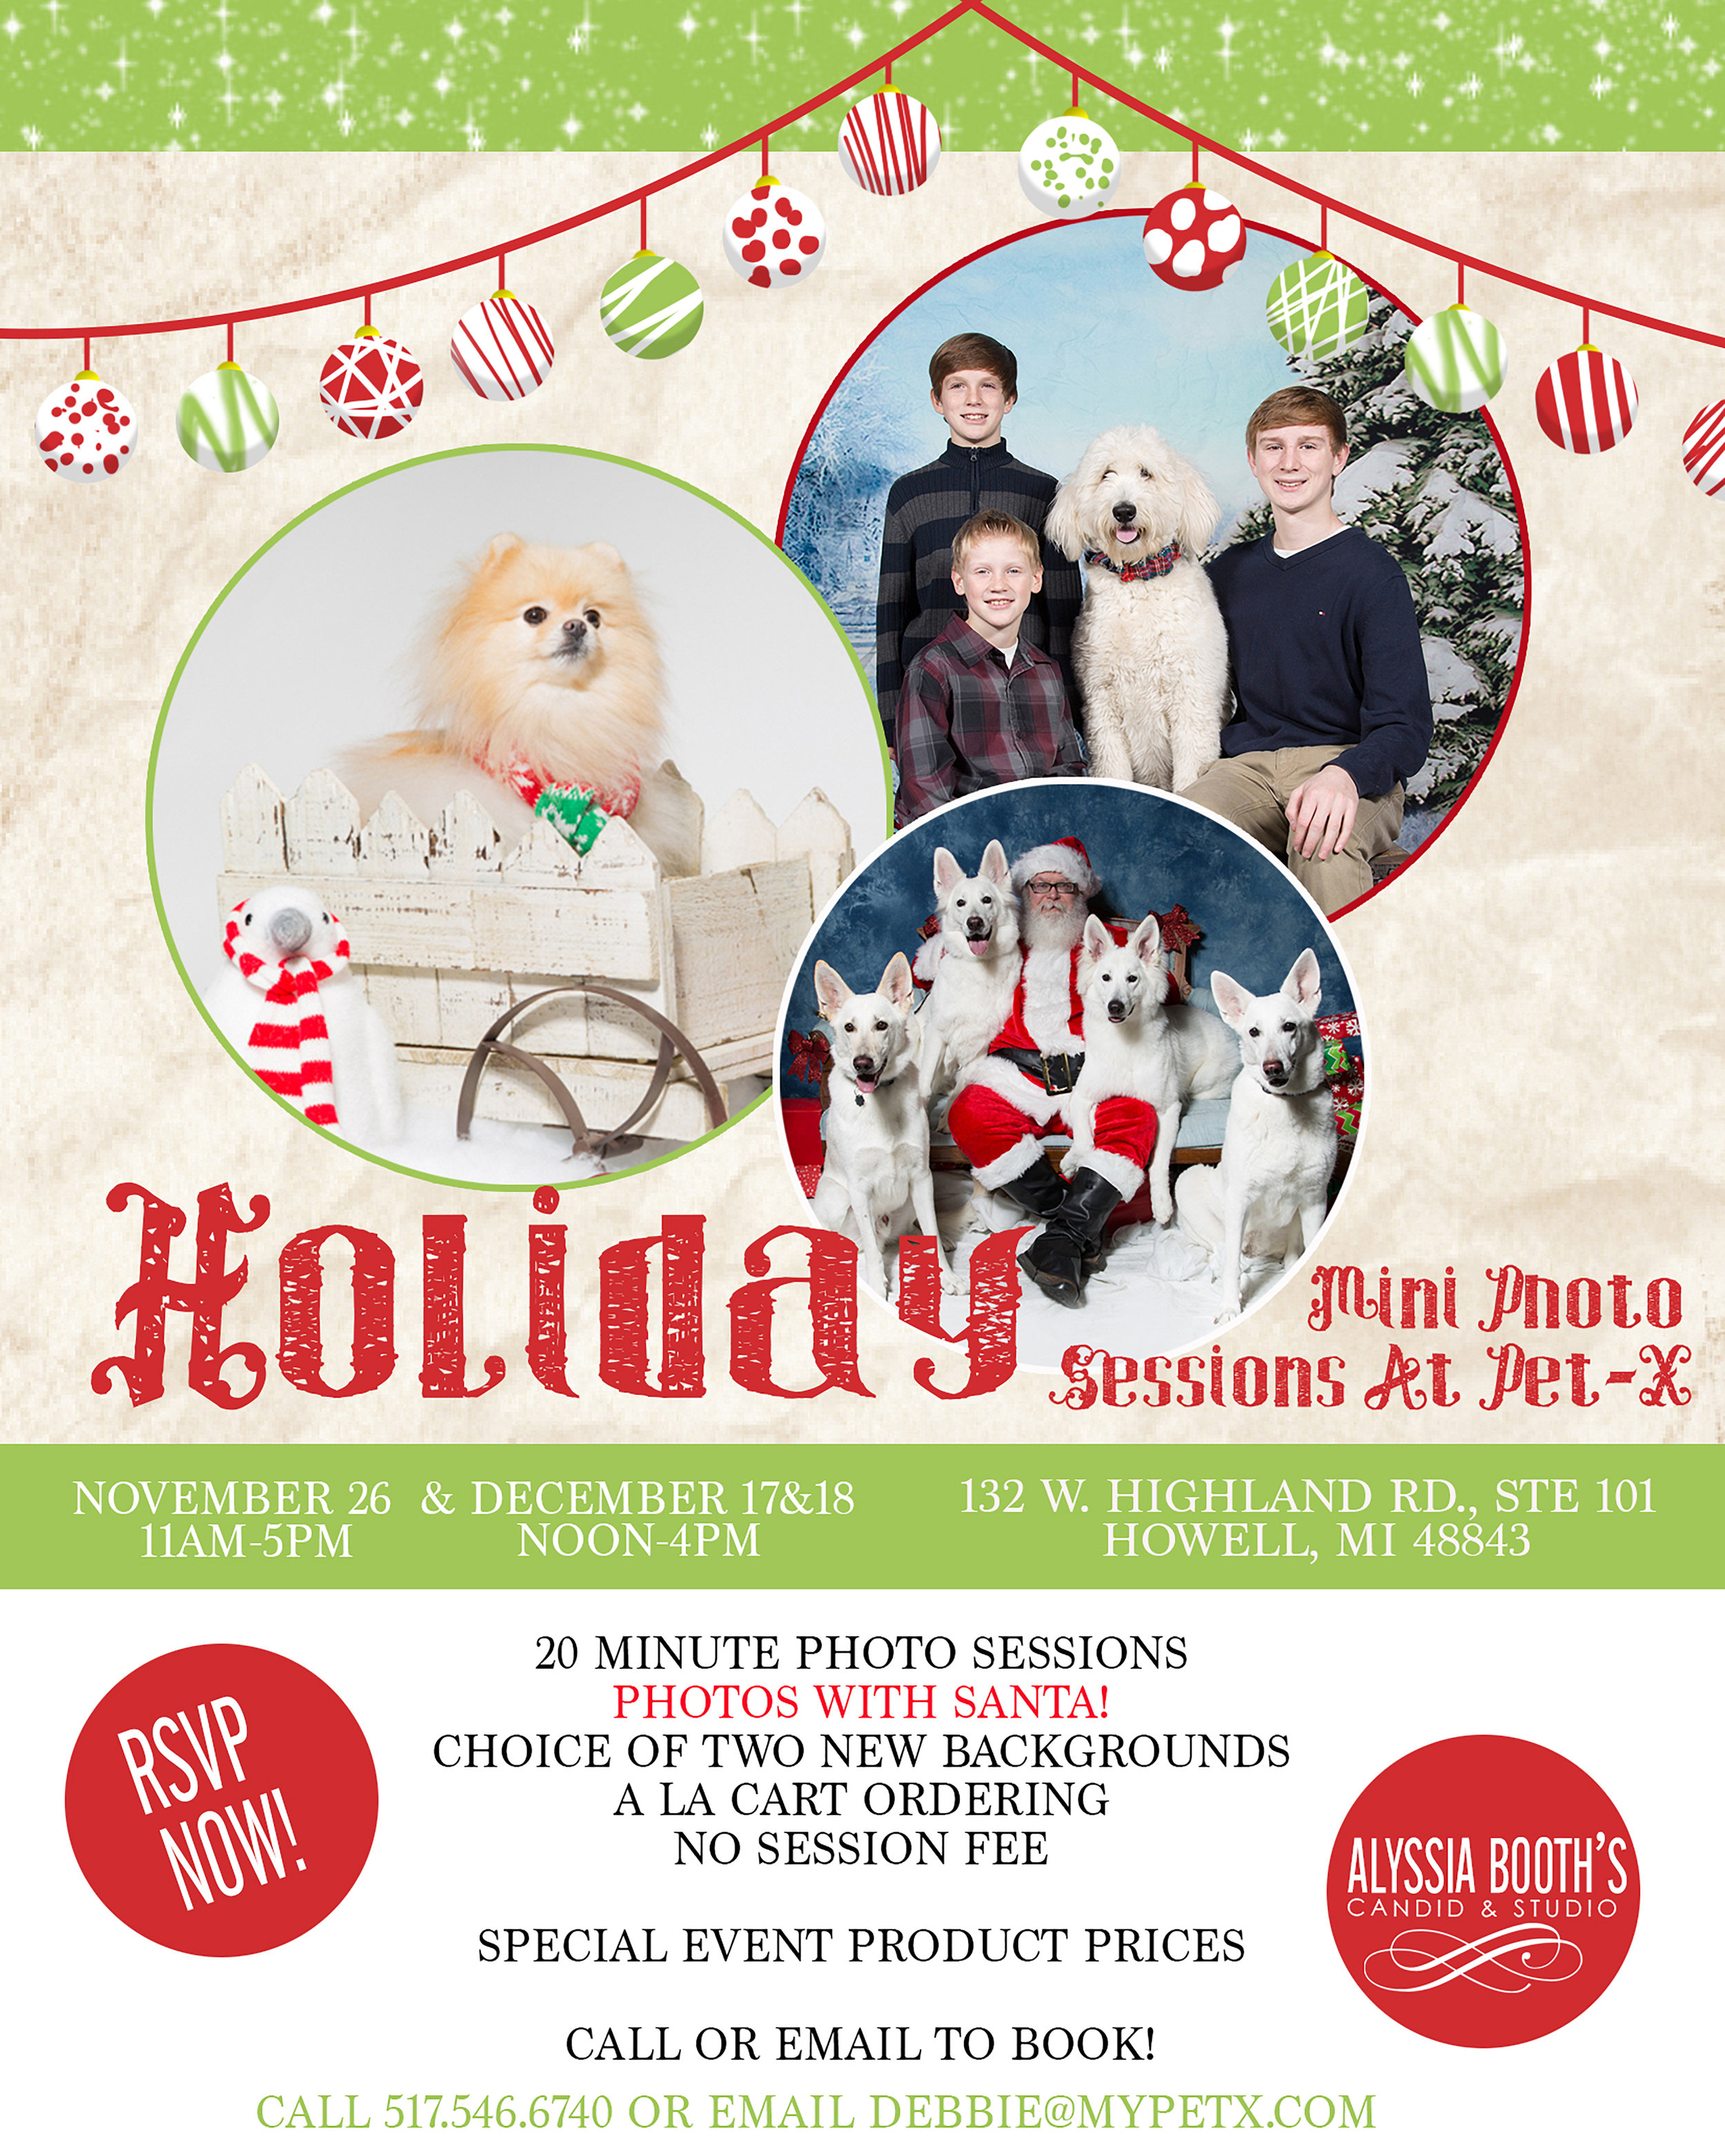 Santa Photos At PetX in Howell Michigan | Alyssia Booth's Candid & Studio